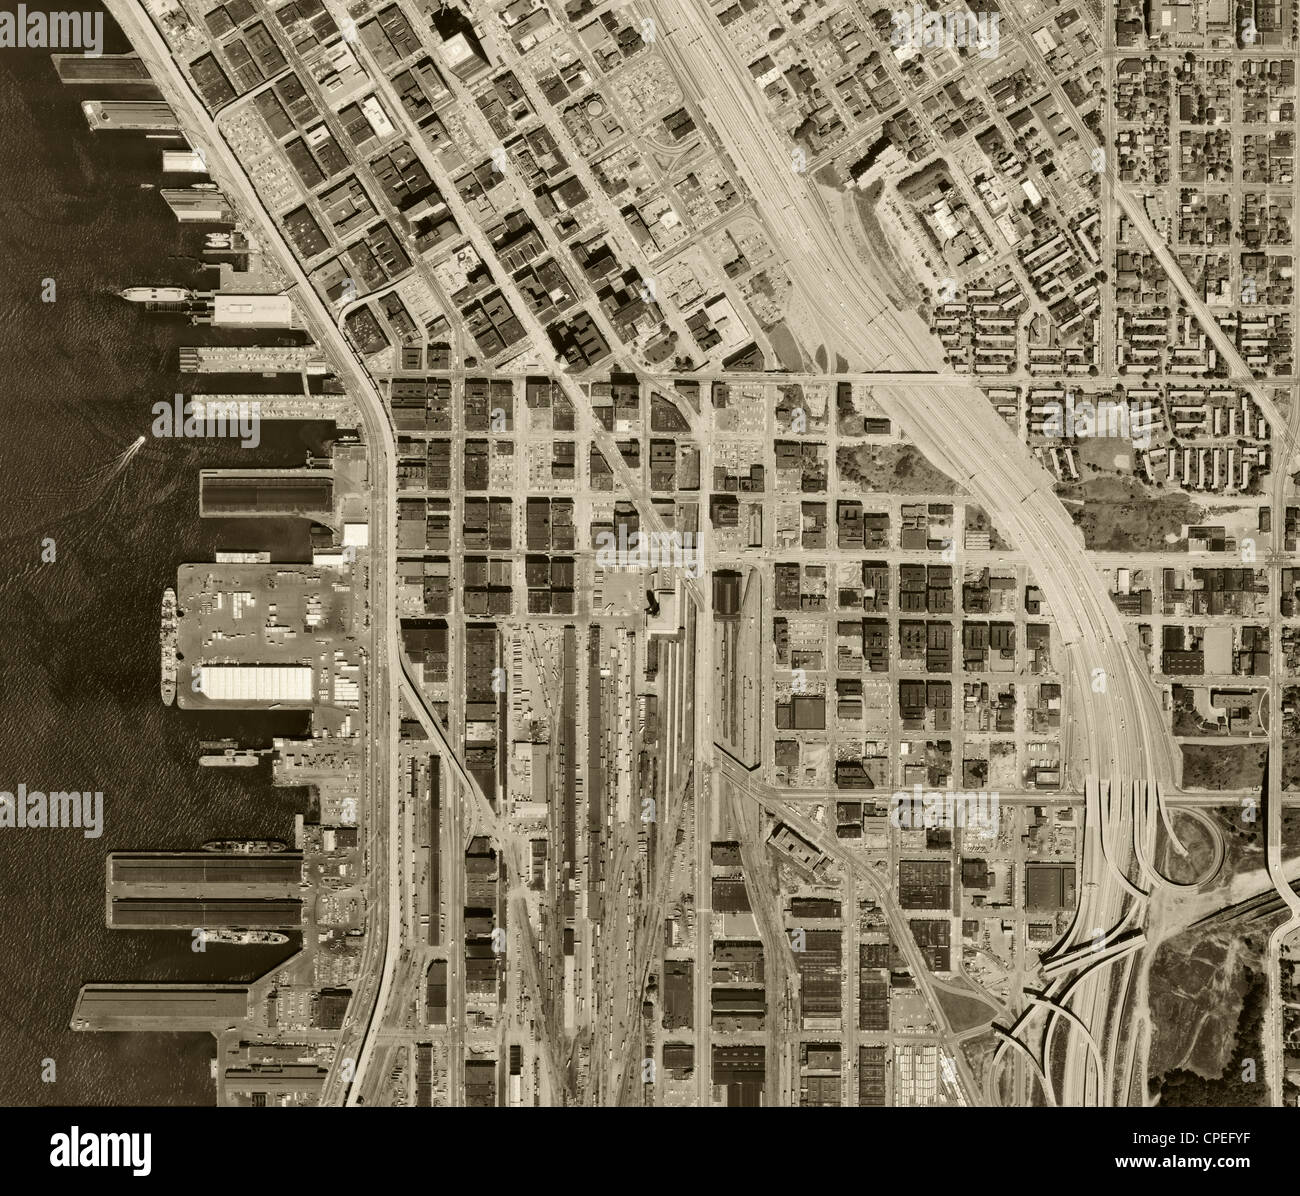 historical aerial photograph Seattle, Washington 1969 - Stock Image